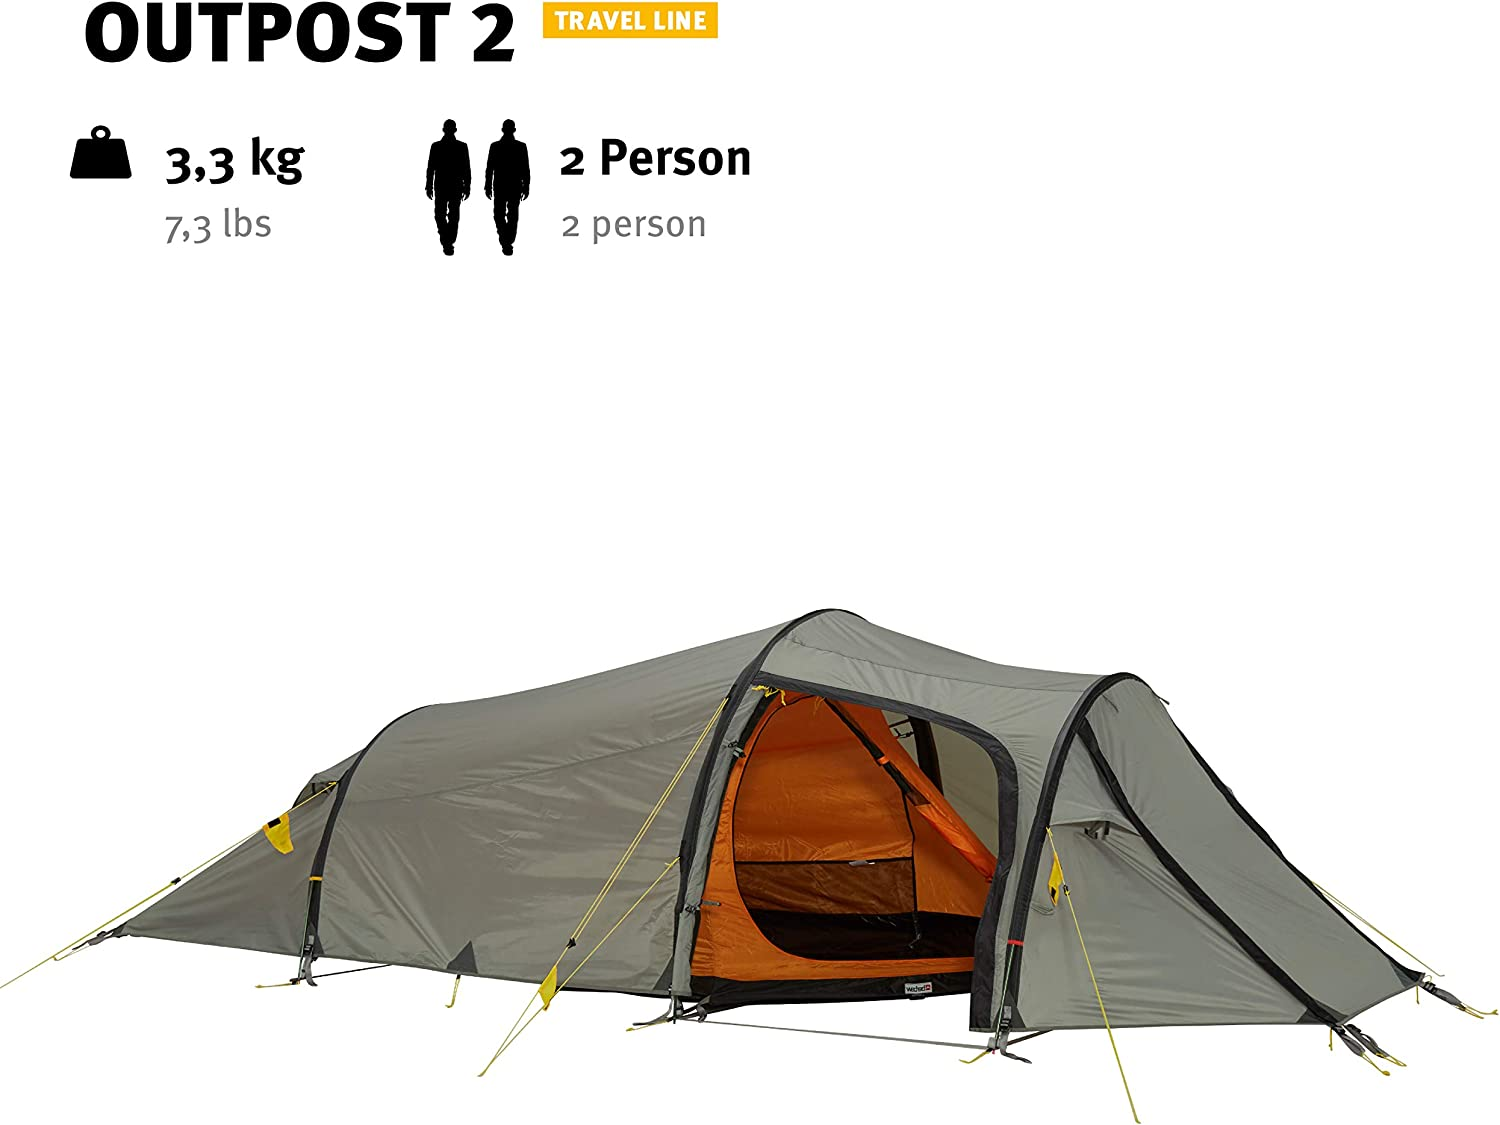 Wechsel tents Tunnel Tent Outpost Oak Very spacious Travel Line